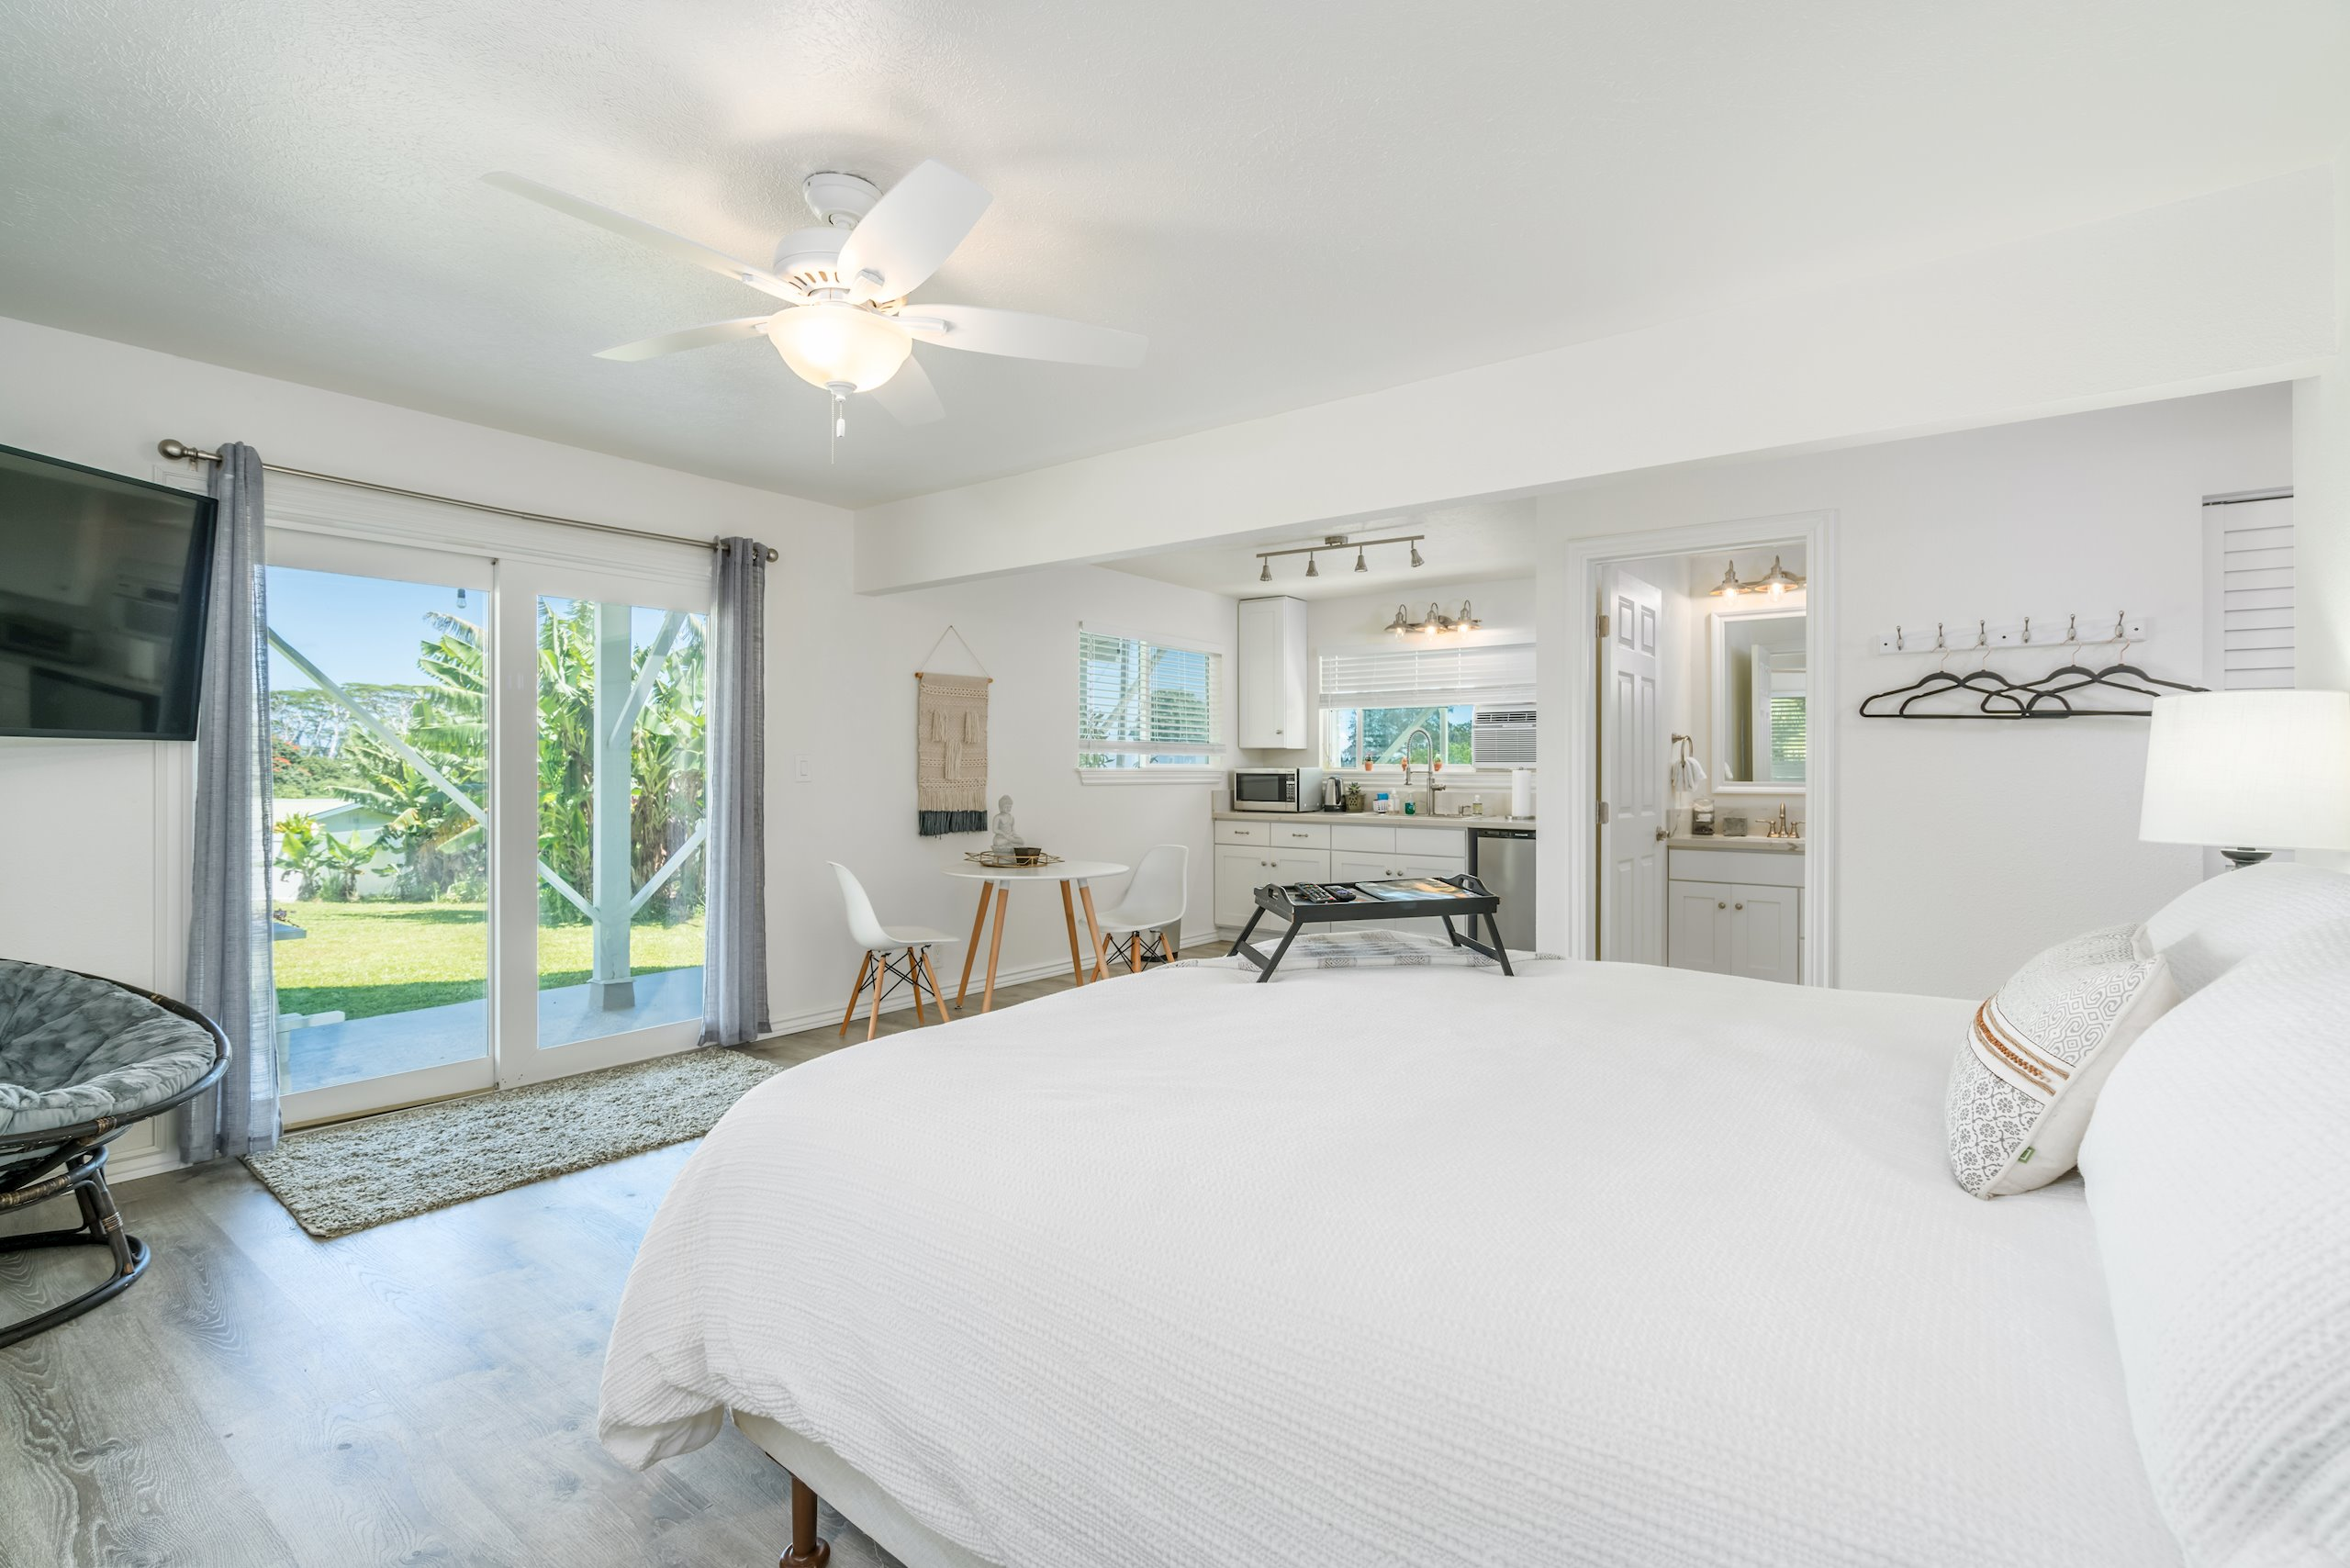 The downstairs master bedroom, with half kitchen and sliding doors that lead out into yard